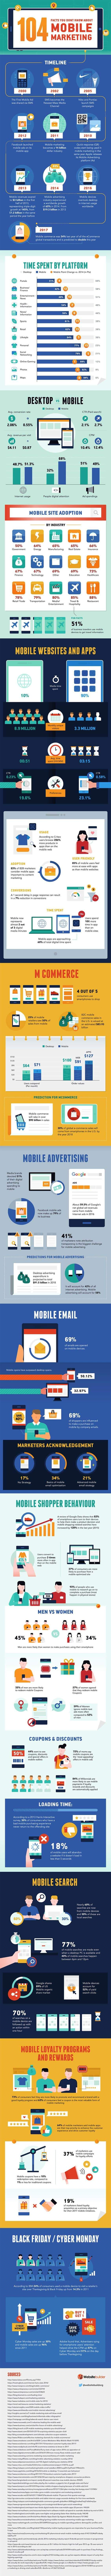 2018 Mobile SEO Infographic